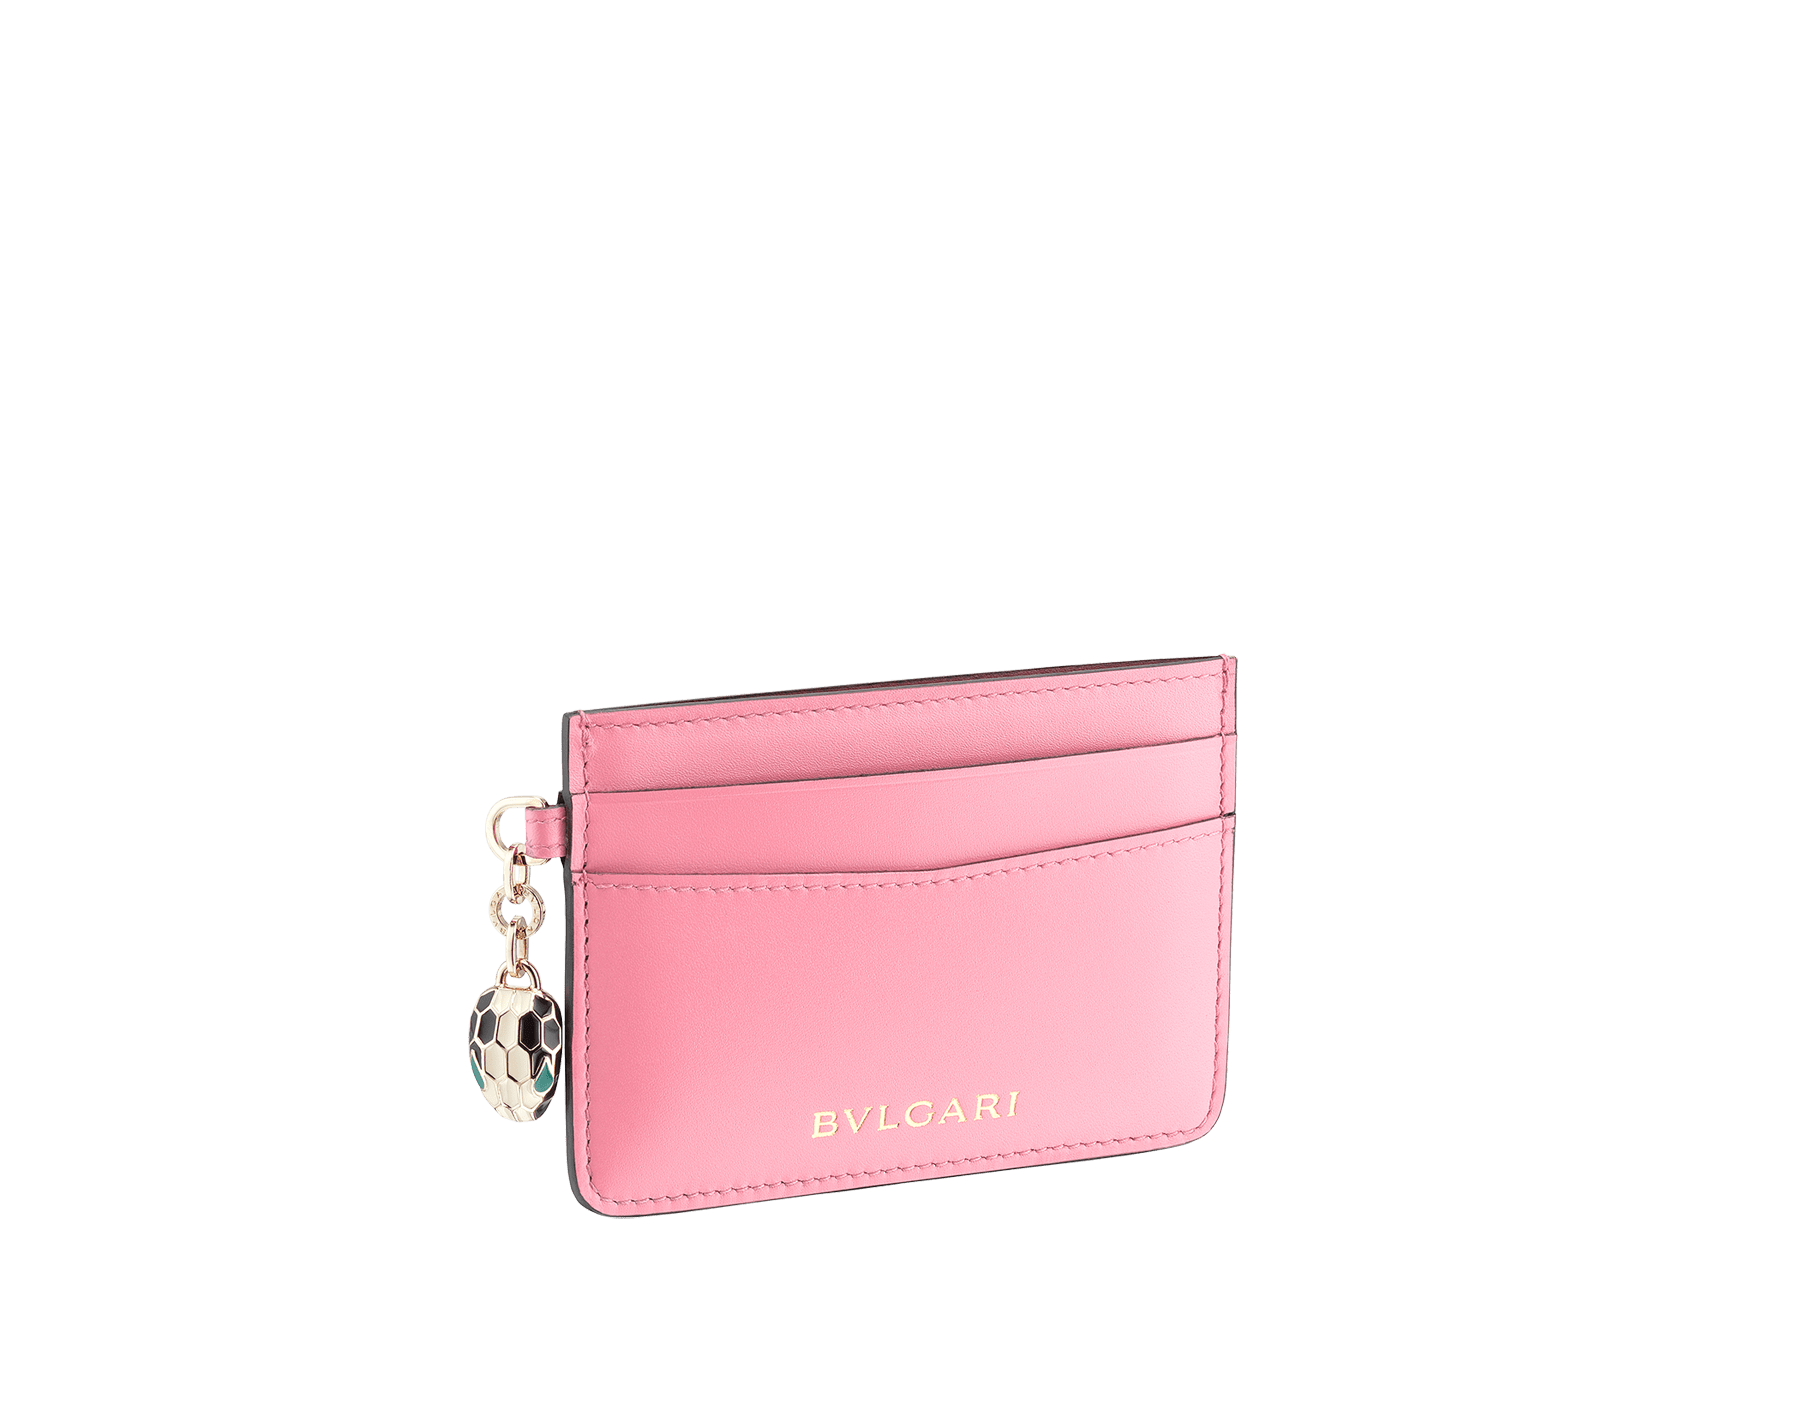 Serpenti Forever credit card holder in flamingo quartz and roman garnet calf leather. Iconic snakehead charm in black and white enamel, with green malachite enamel eyes. 288018 image 1